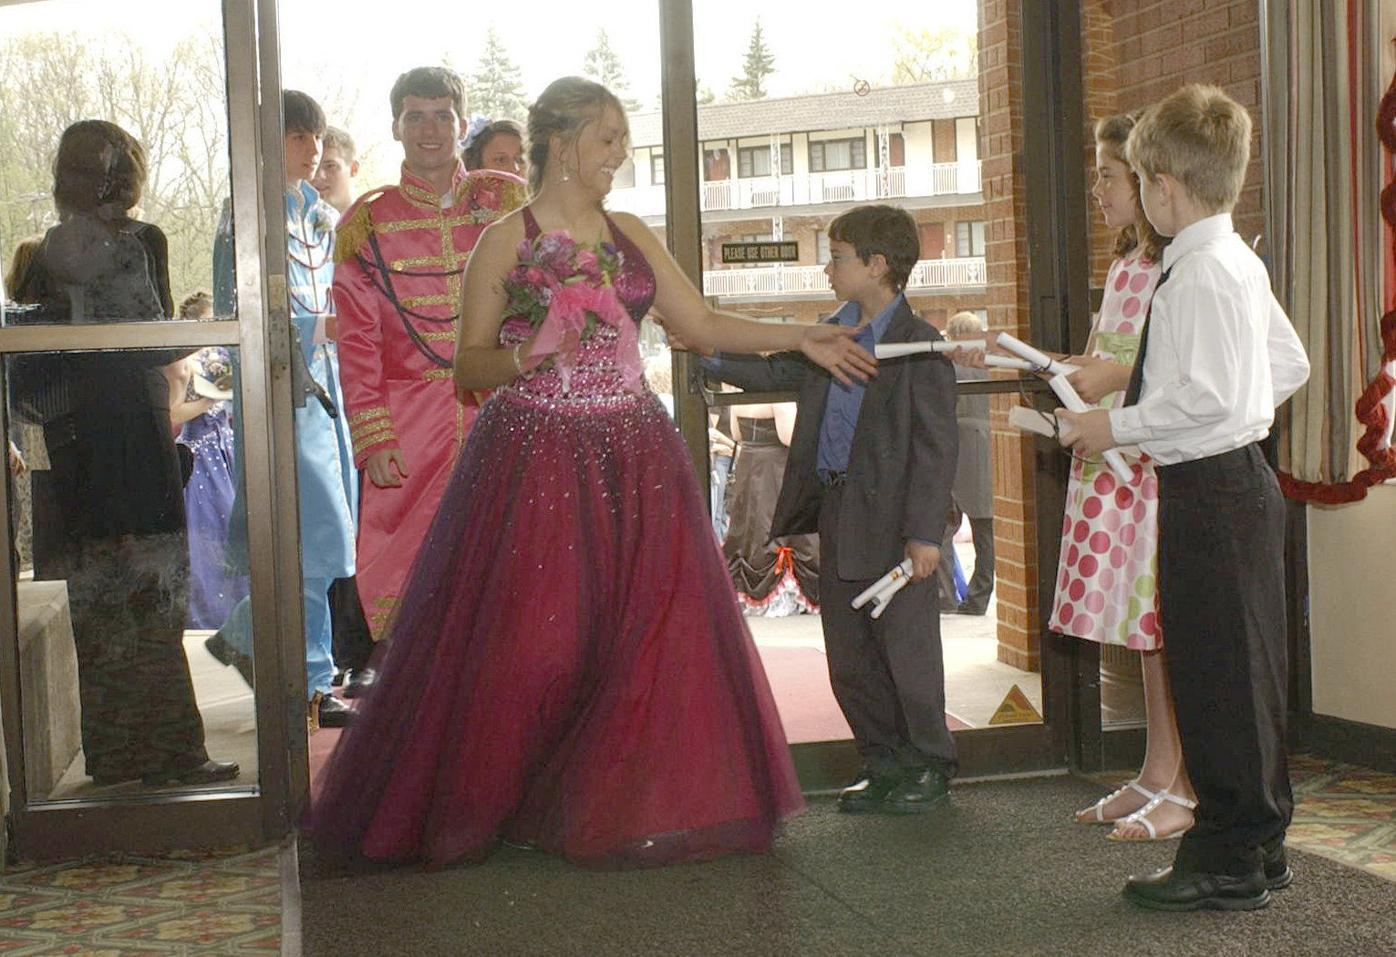 ERIC CONOVER/Staff Photographer North Schuylkill elementary students Jaden Leiby, right, Samantha Shinkus, and Jonathan Davis hand out Prom Promise letters to North Schuylkill High School students Saturday at Genetti's Best Western Inn and Suites prior to the school's annual prom in 2009.